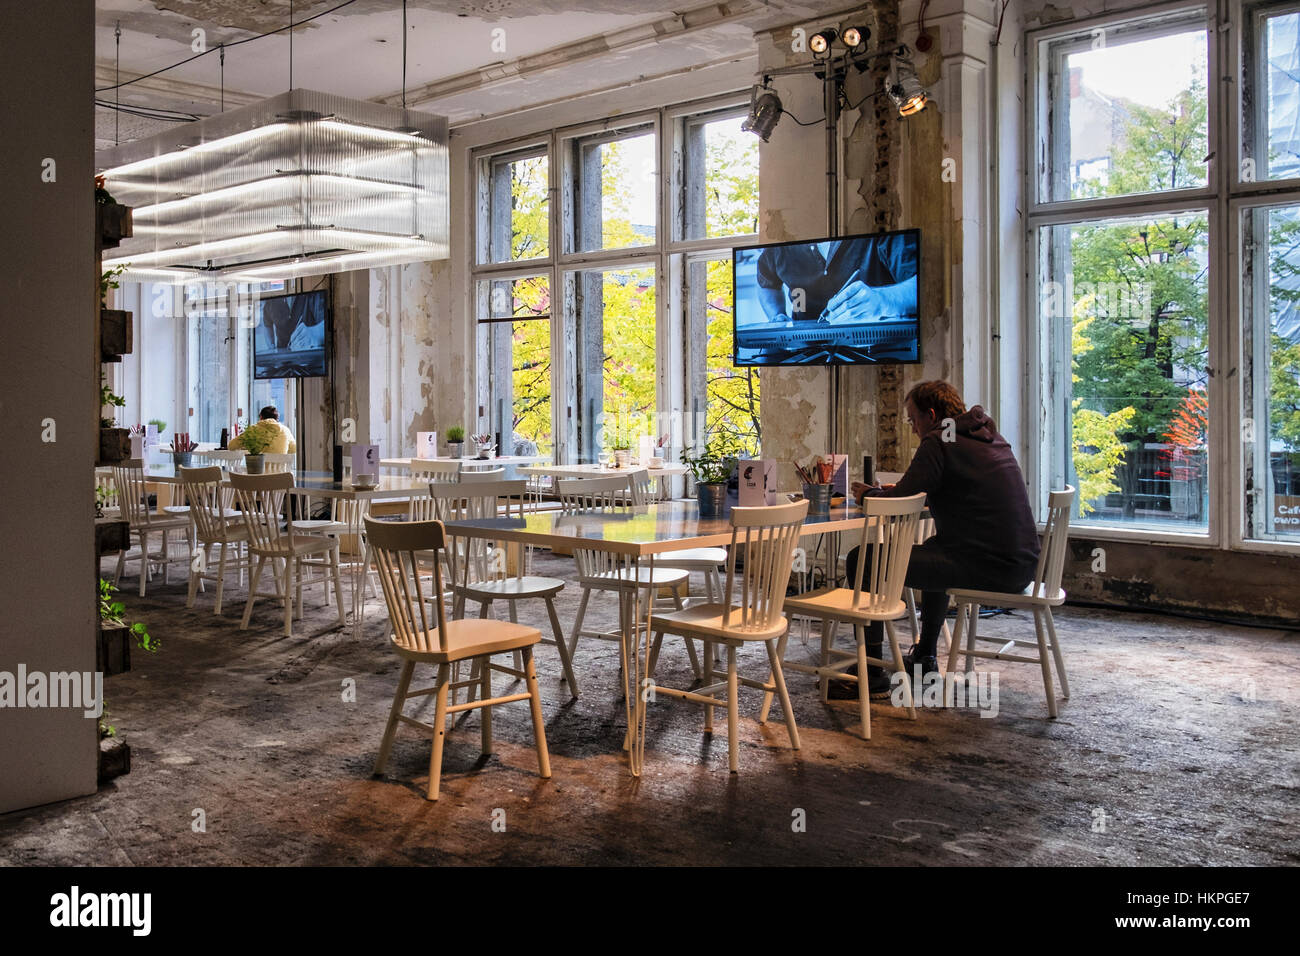 Berlin Mitte. Restaurant at C-HR Innovation and Creativity Festival in  historic Kaufhaus Jahndorf building - Stock Image